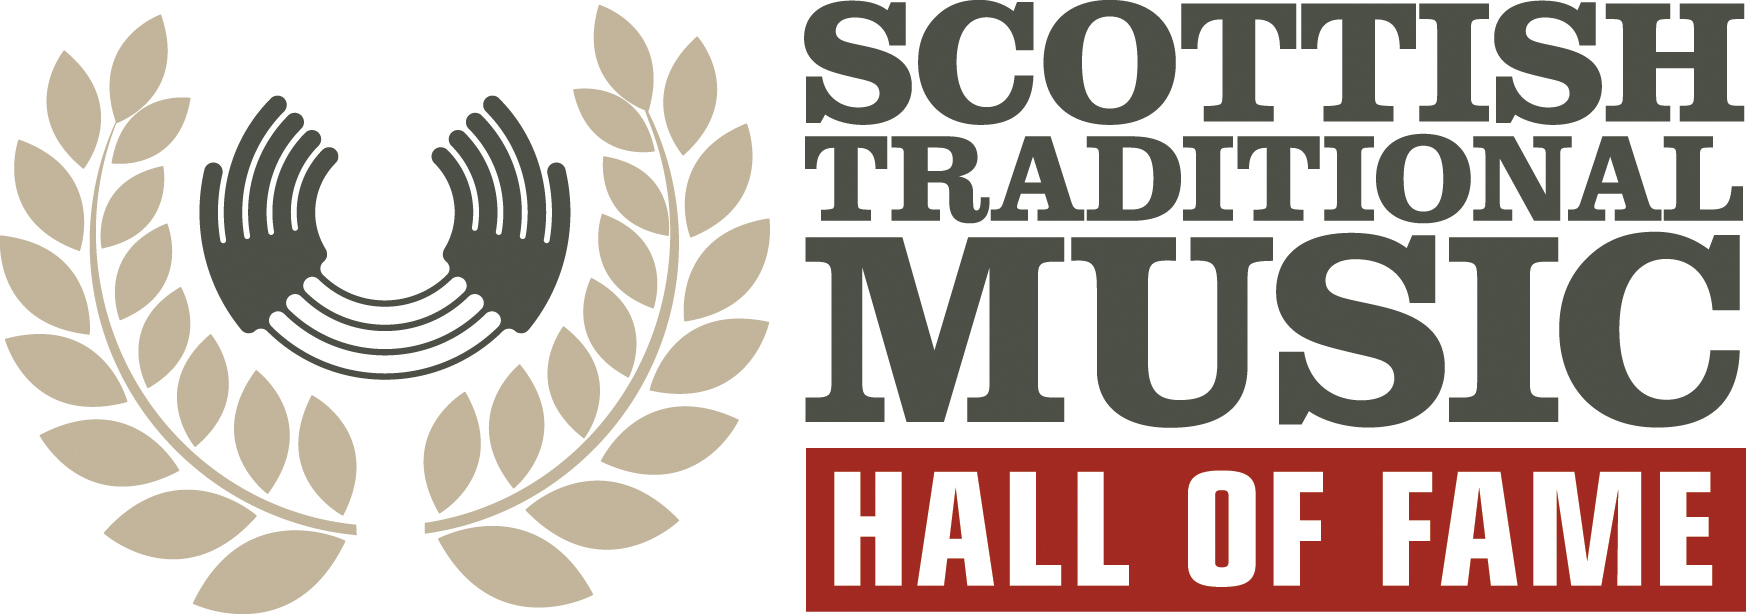 about scottish traditional music hall of fame scottish traditional music hall of fame. Black Bedroom Furniture Sets. Home Design Ideas